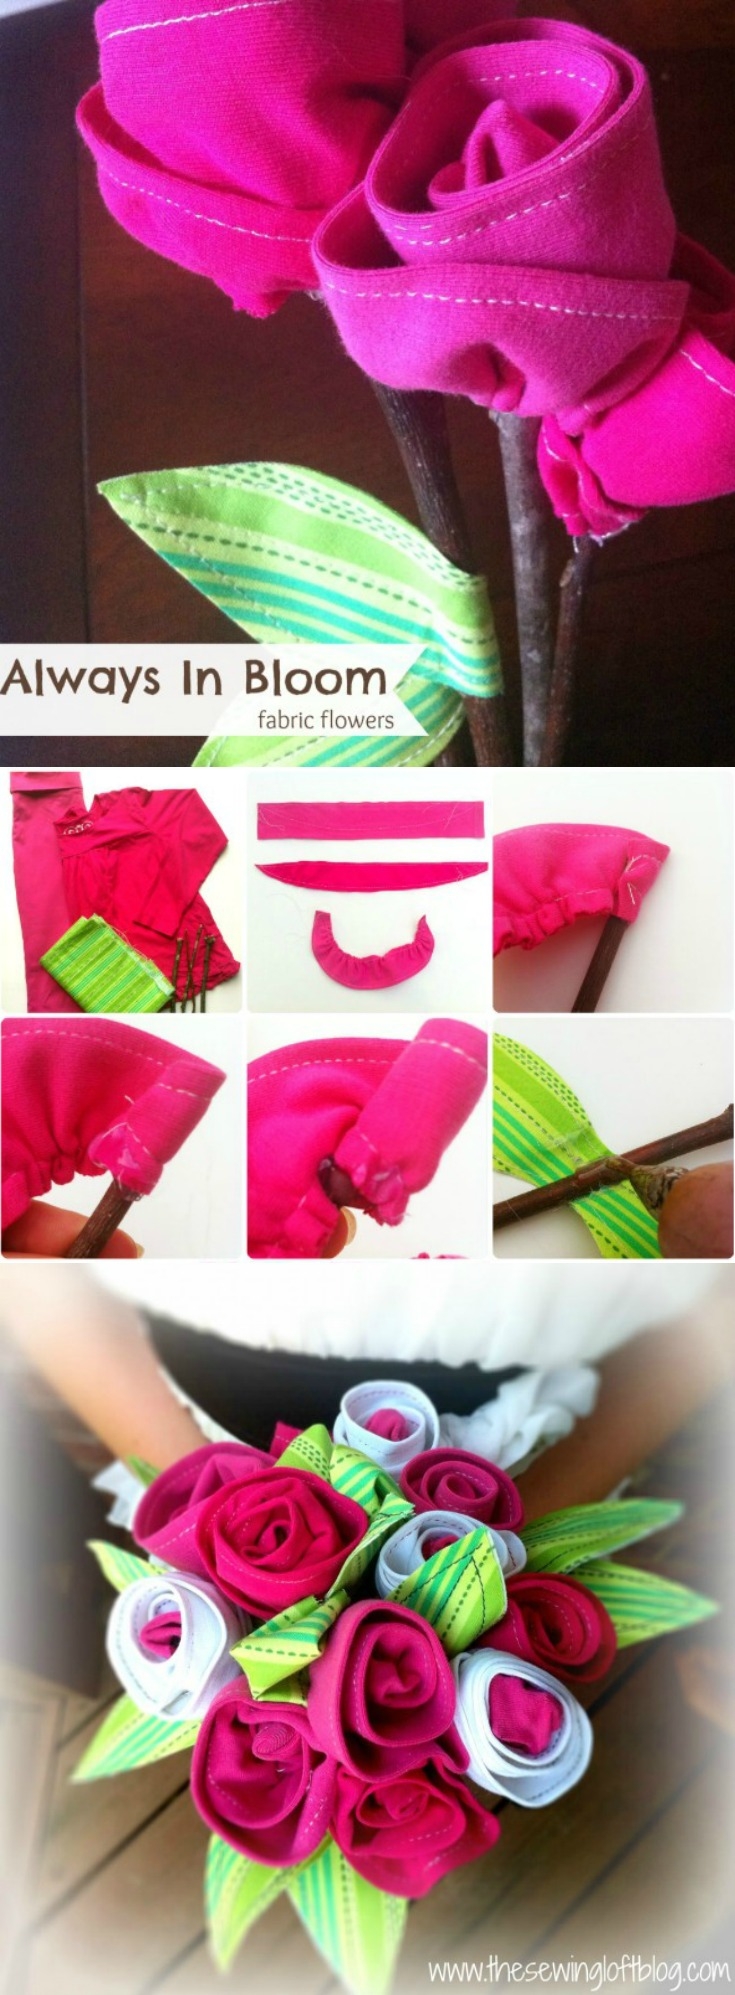 Create these amazing fabric flowers from keepsake items like tee shirts, special occasion dresses, onesies and more. Learn how on The Sewing Loft.